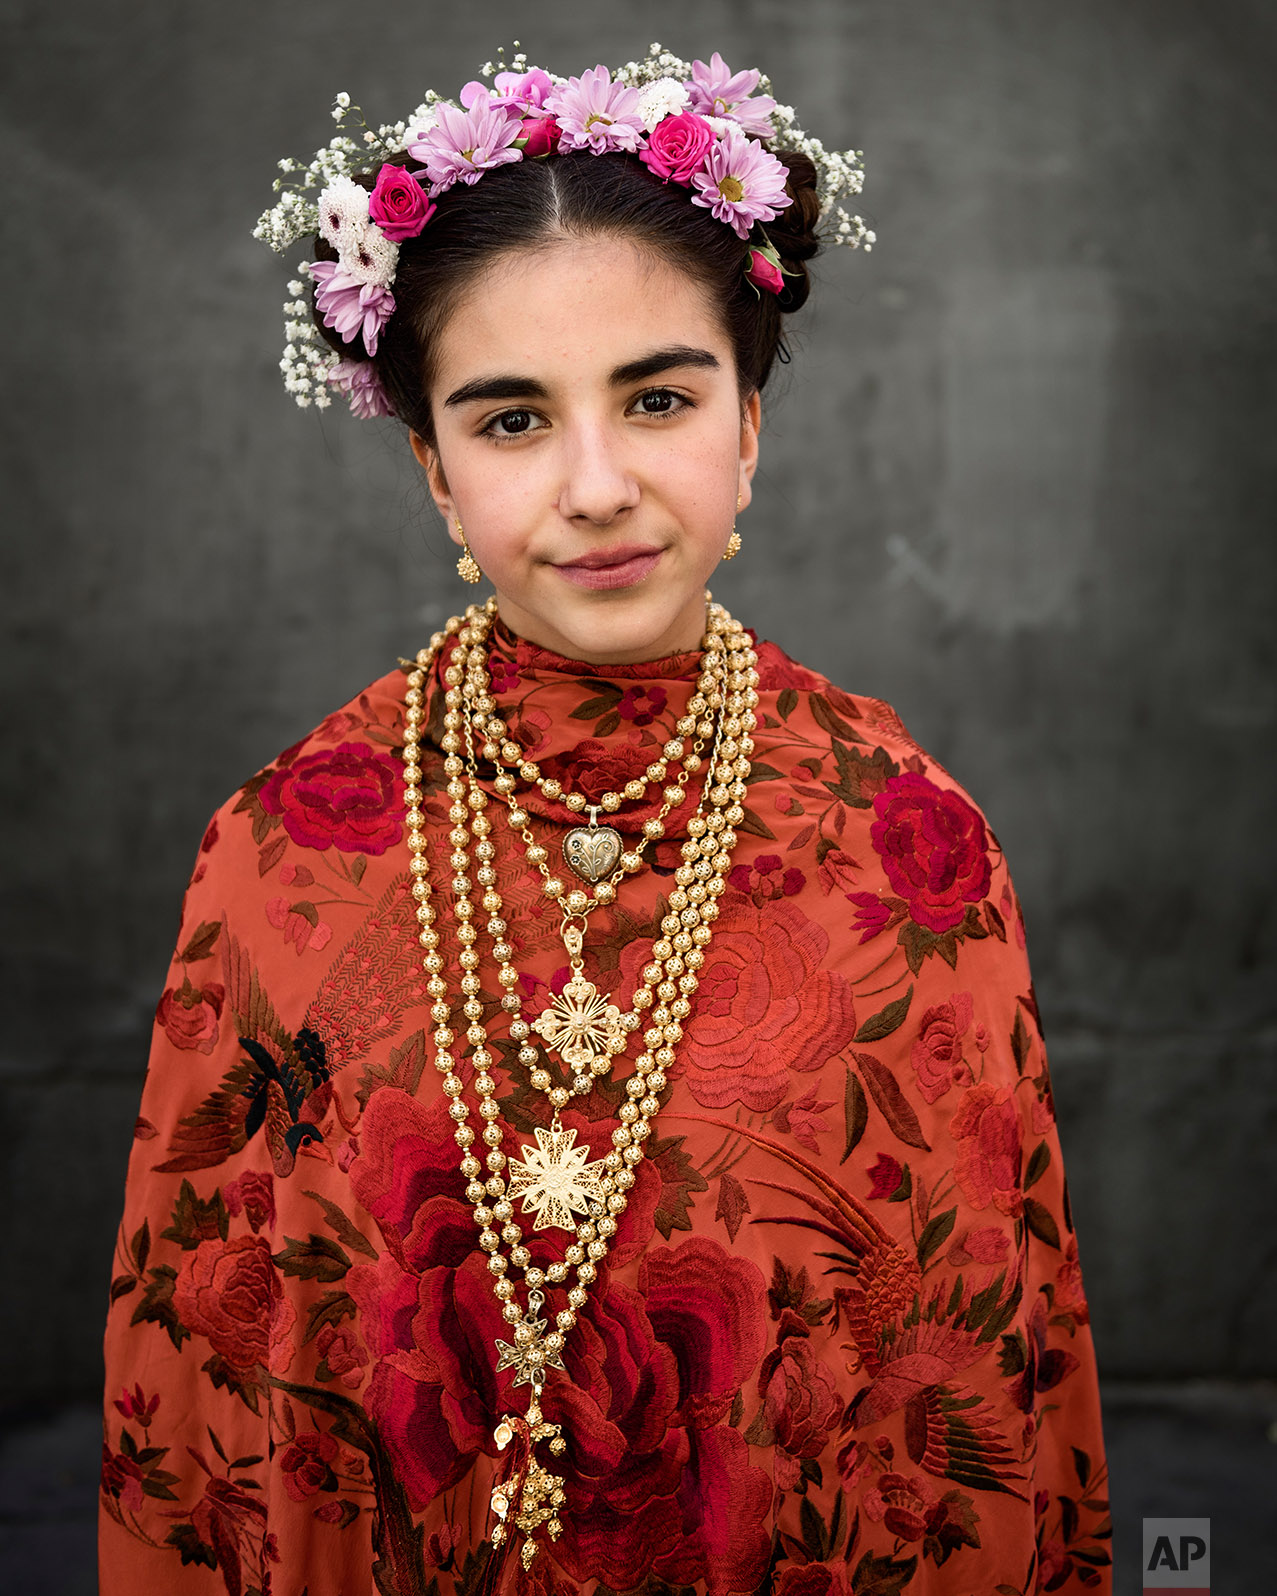 A 'Maya' girl poses for a picture after sitting in an altar during the traditional celebration of 'Las Mayas' on the streets in Madrid, Spain Sunday, May 7, 2017. (AP Photo/Daniel Ochoa de Olza)